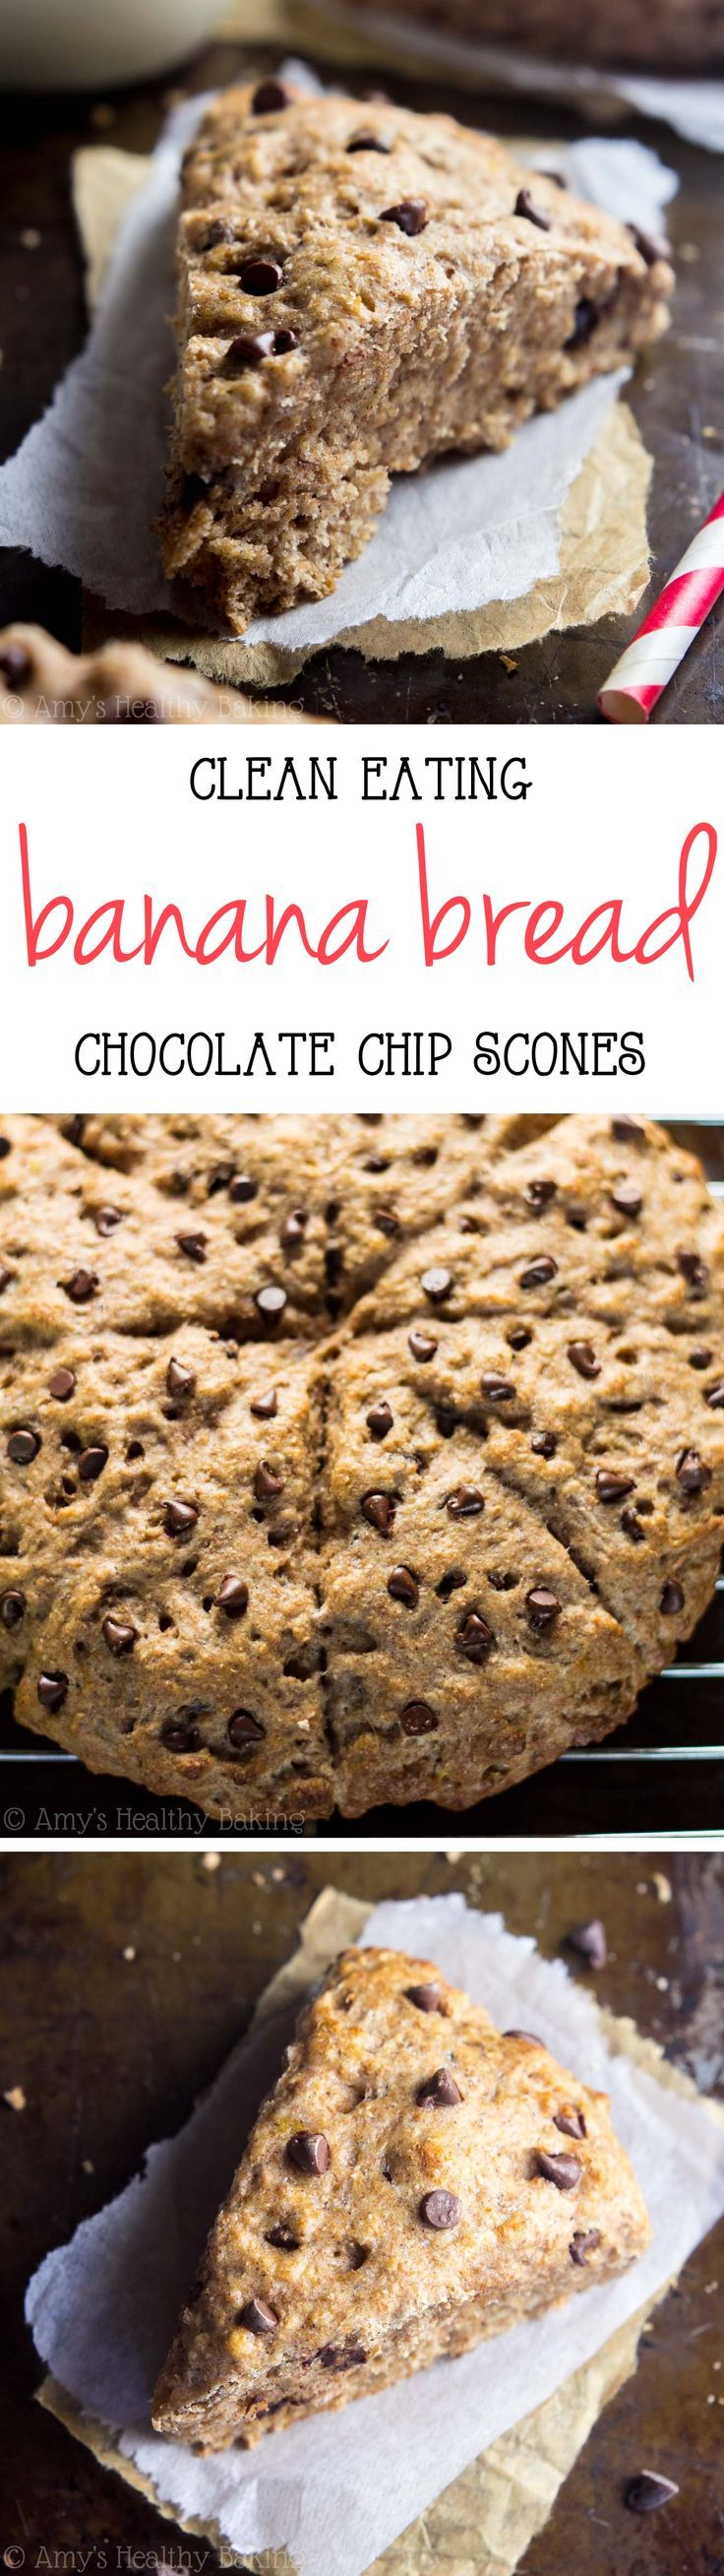 Clean-Eating Chocolate Chip Banana Bread Scones